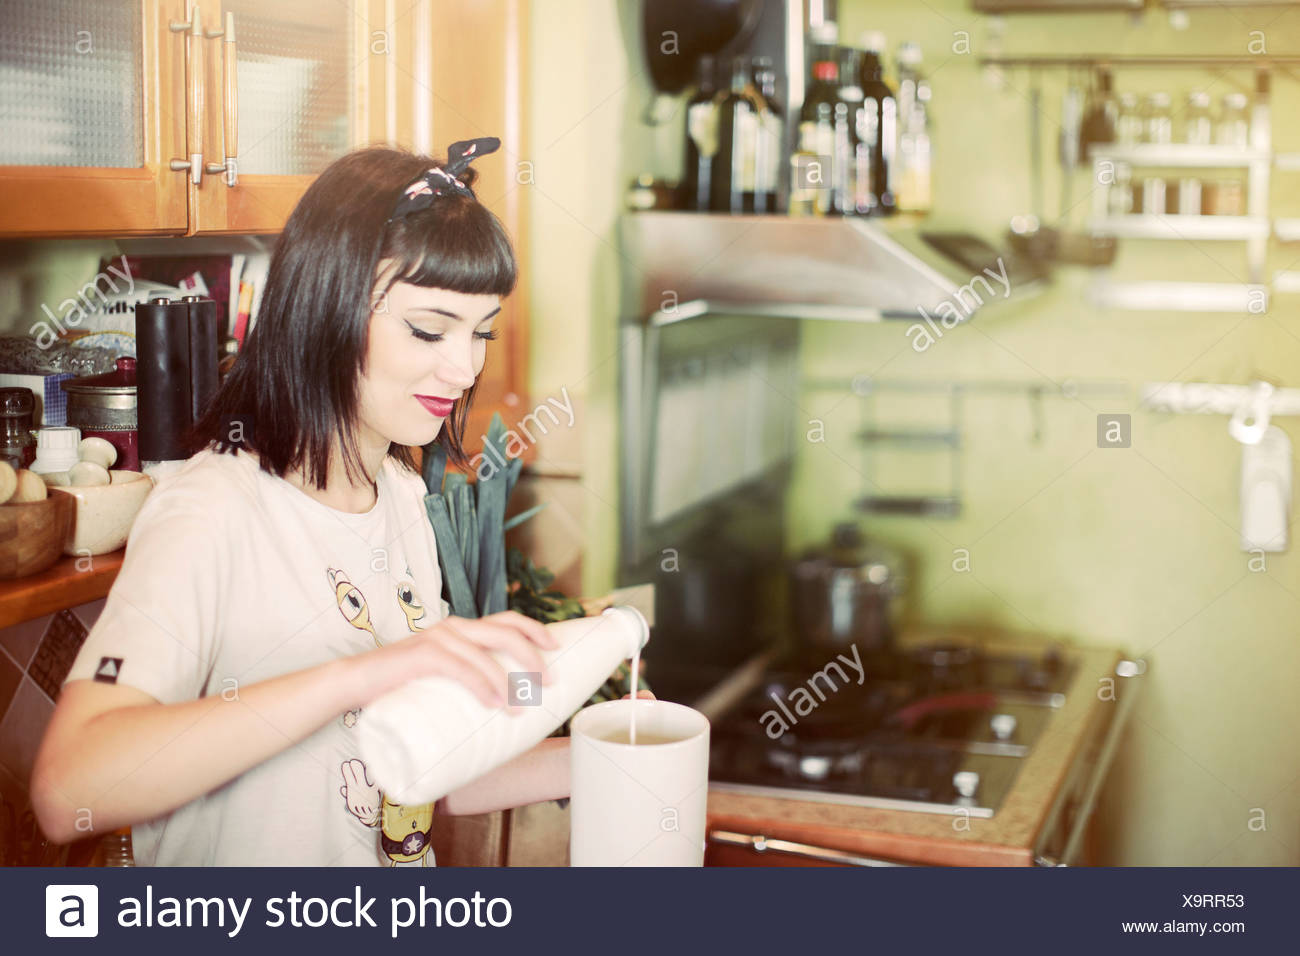 Young woman preparing a milk drink in kitchen - Stock Image